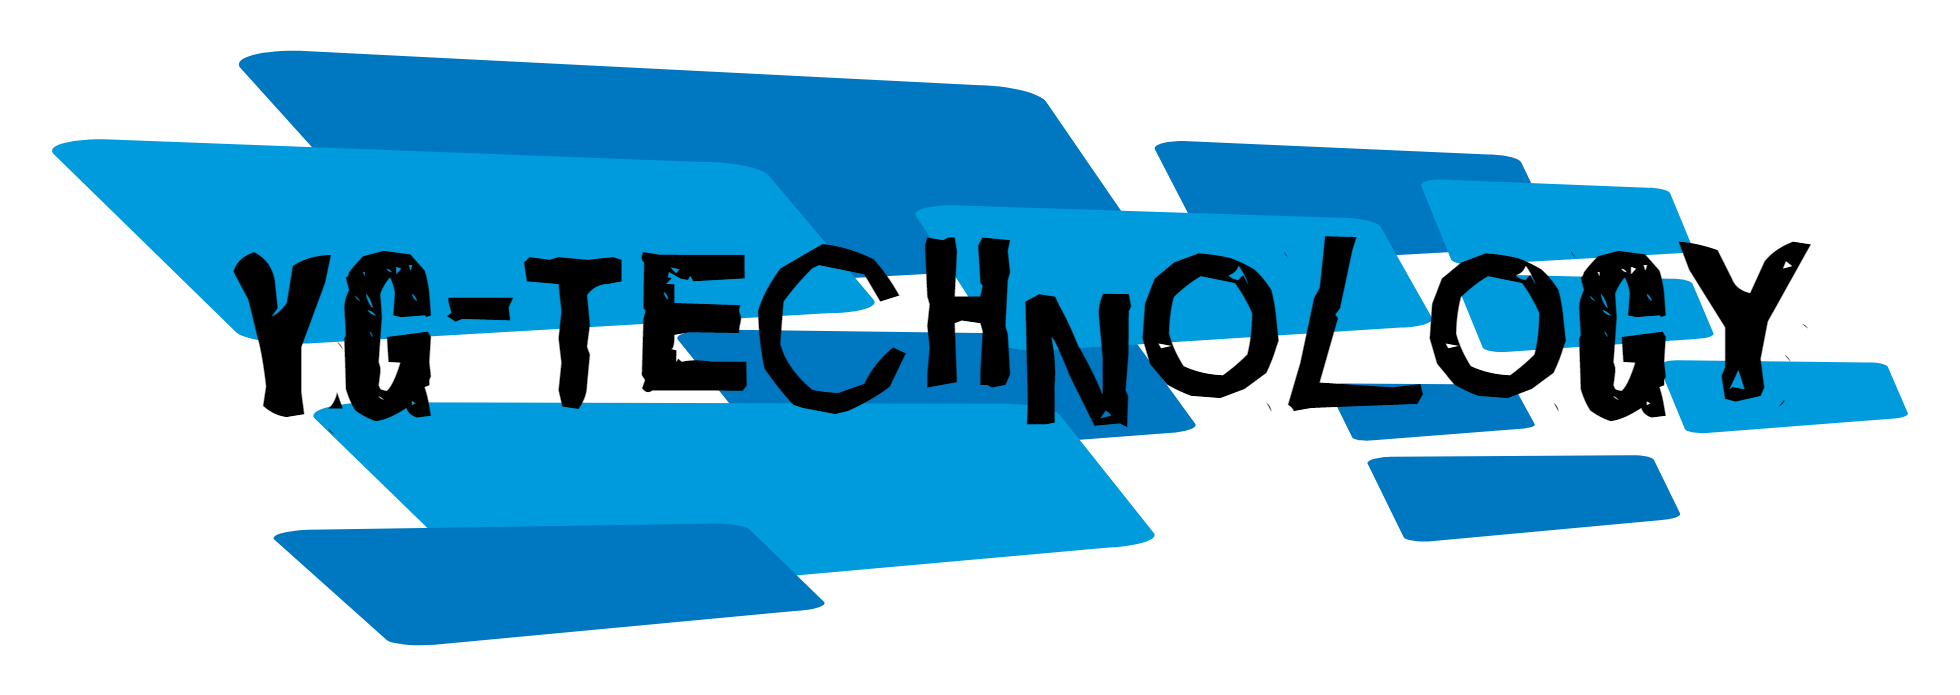 logo yg-technology